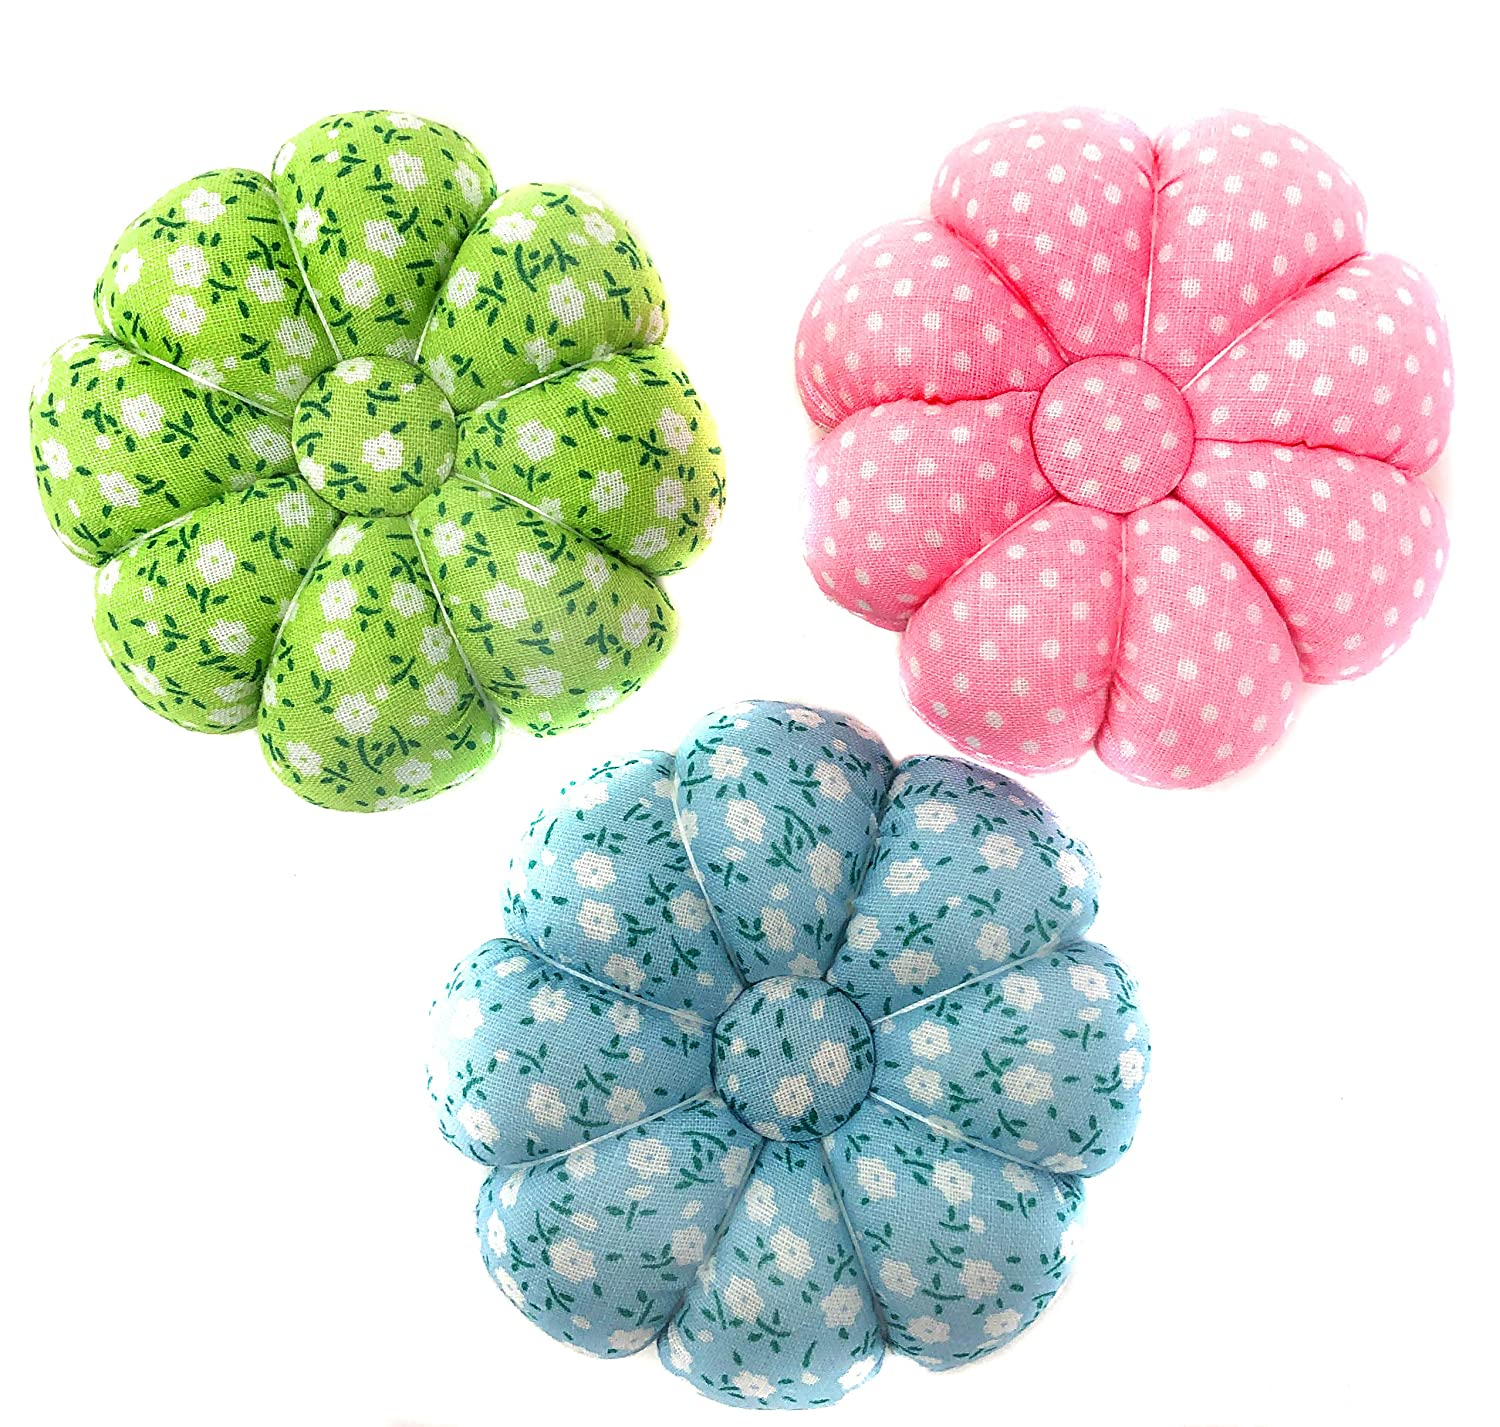 Needlework Rusoji Pack of 3 Wrist Wearable Fabric Coated Pumpkin Shaped Sewing Needle Pin Cushions with Polka Dot Flower Pattern Design for DIY Craft